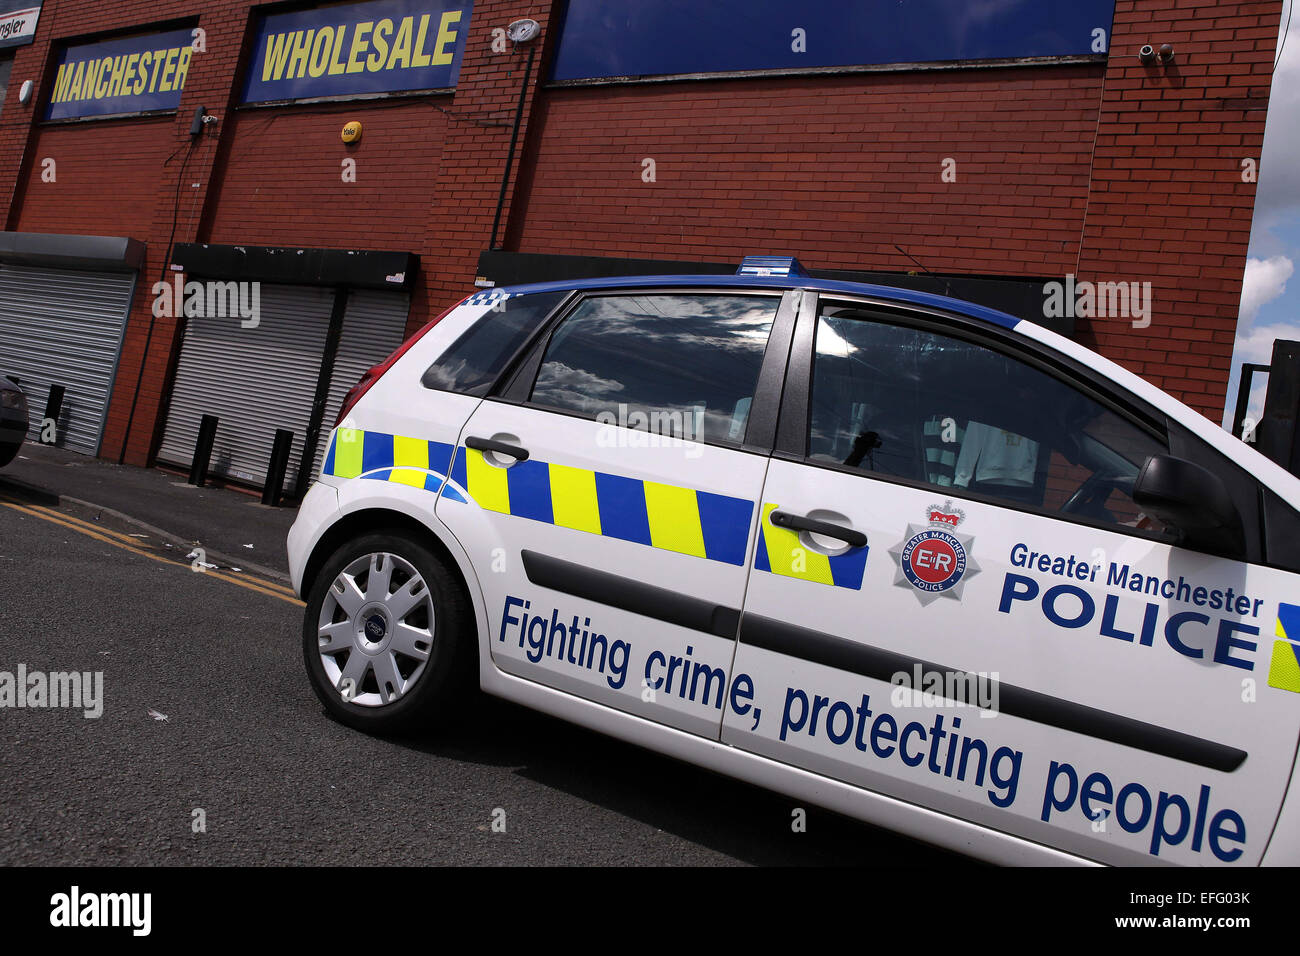 Greater Manchester Police car parked outside a clothes Wholesale warehouse in Manchester - Stock Image